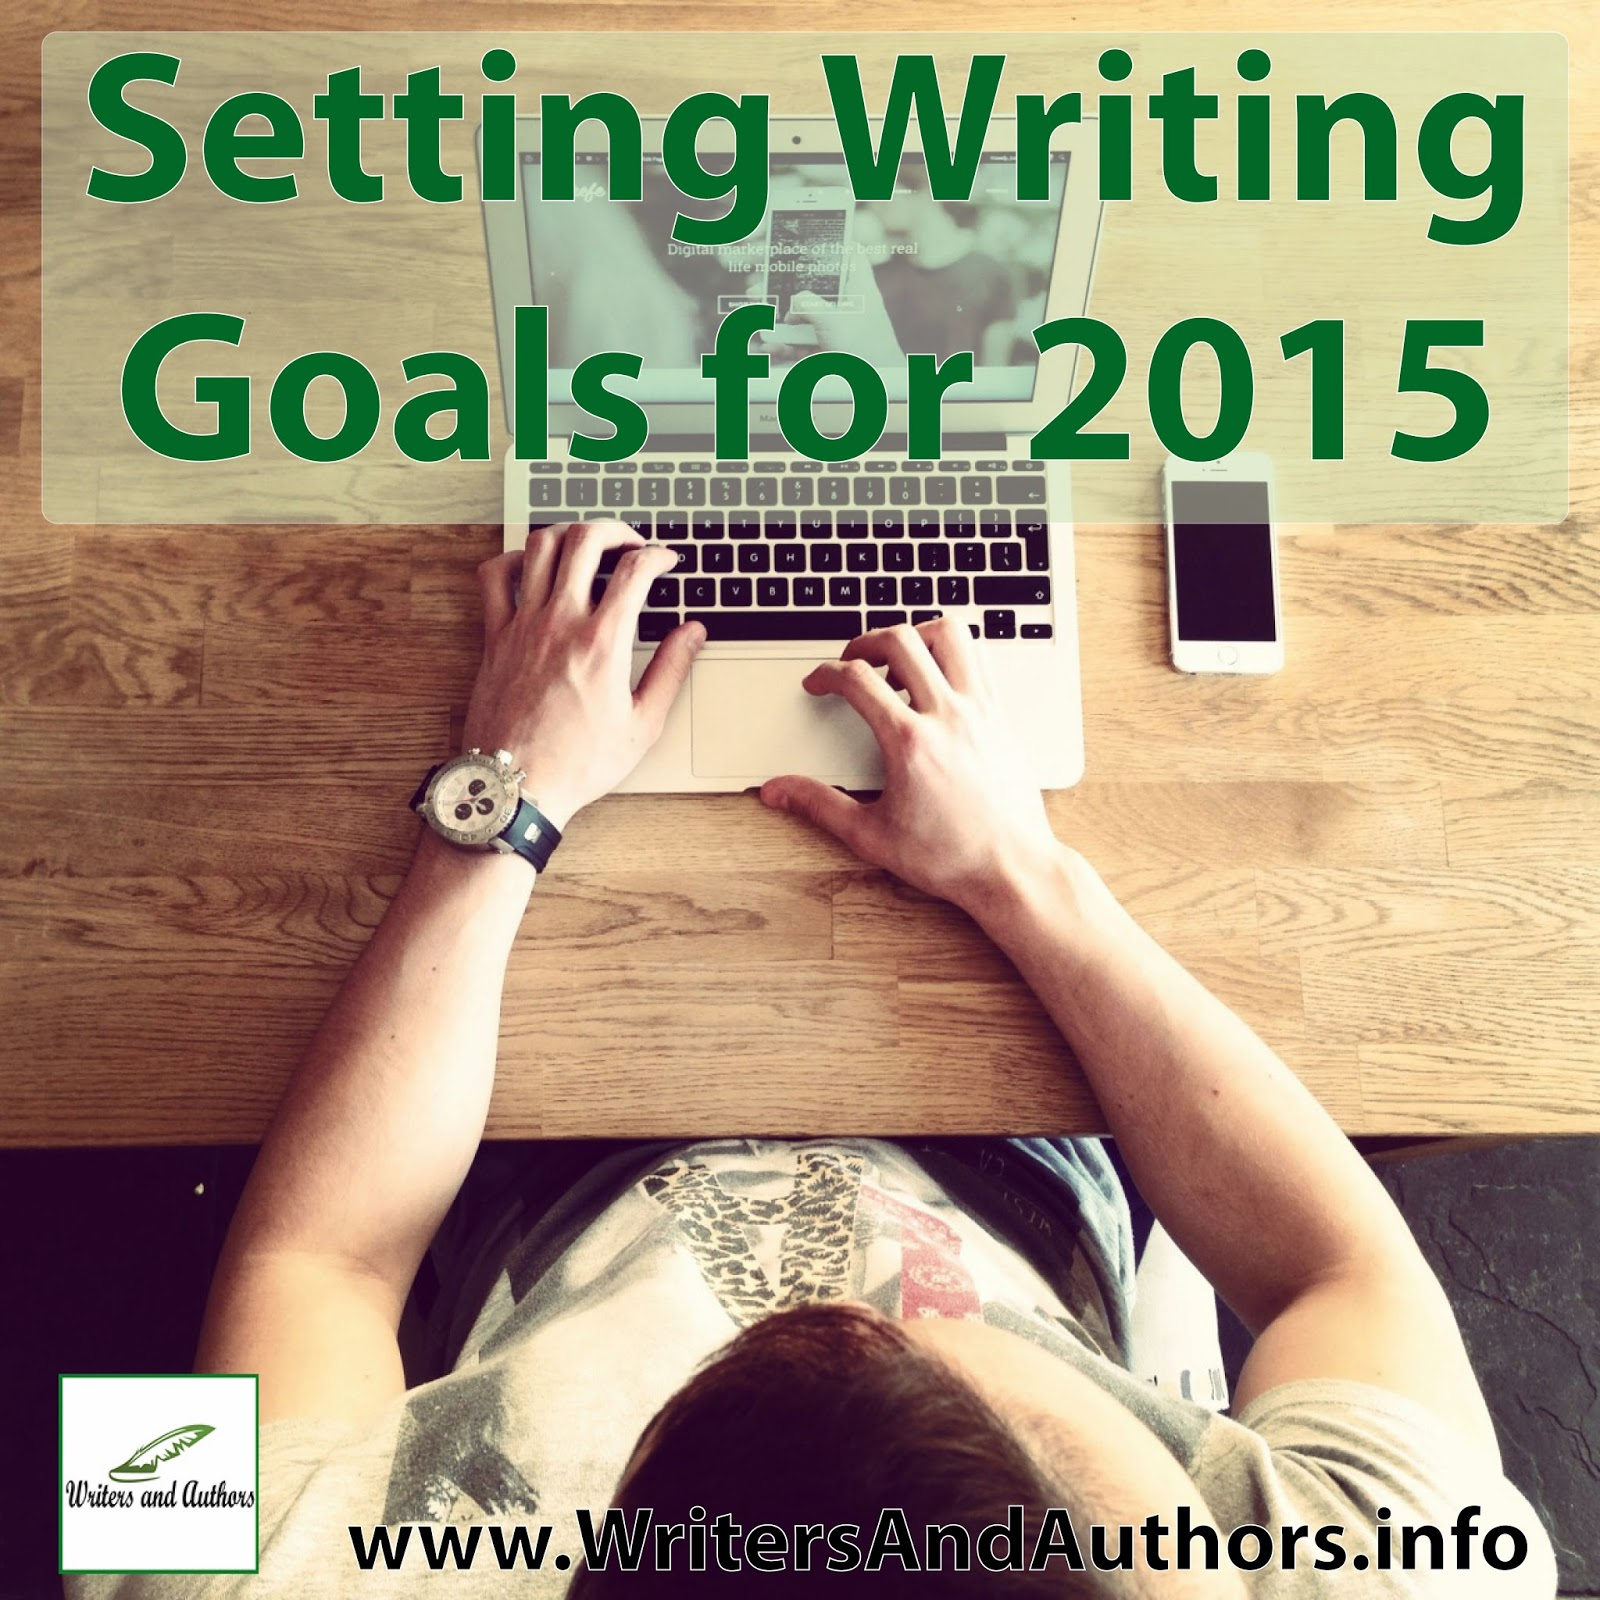 Setting writing goals for 2015